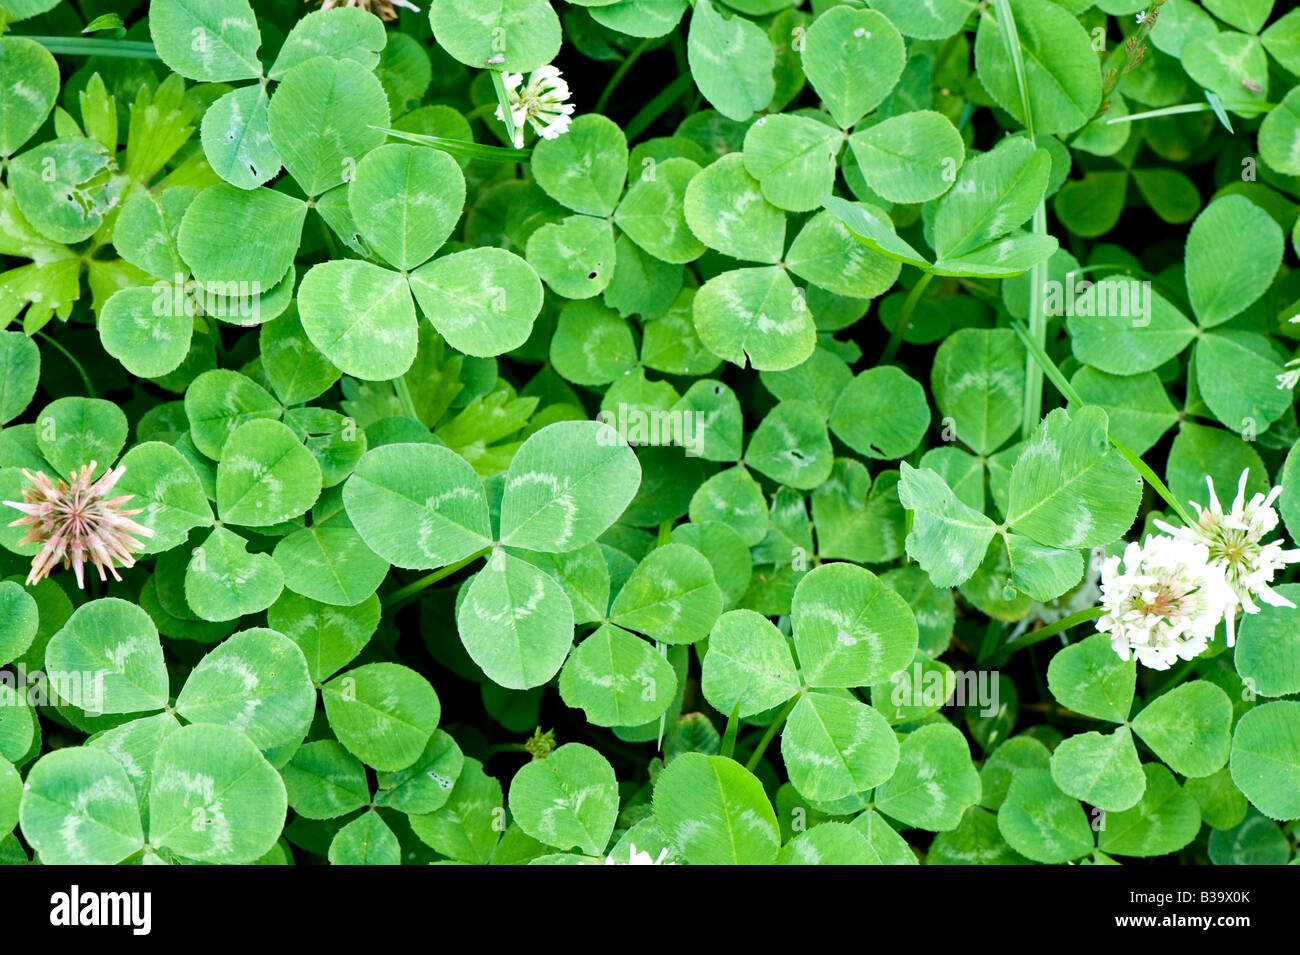 White clover flowering in a grass ley clover mixture Sedbergh Cumbria - Stock Image